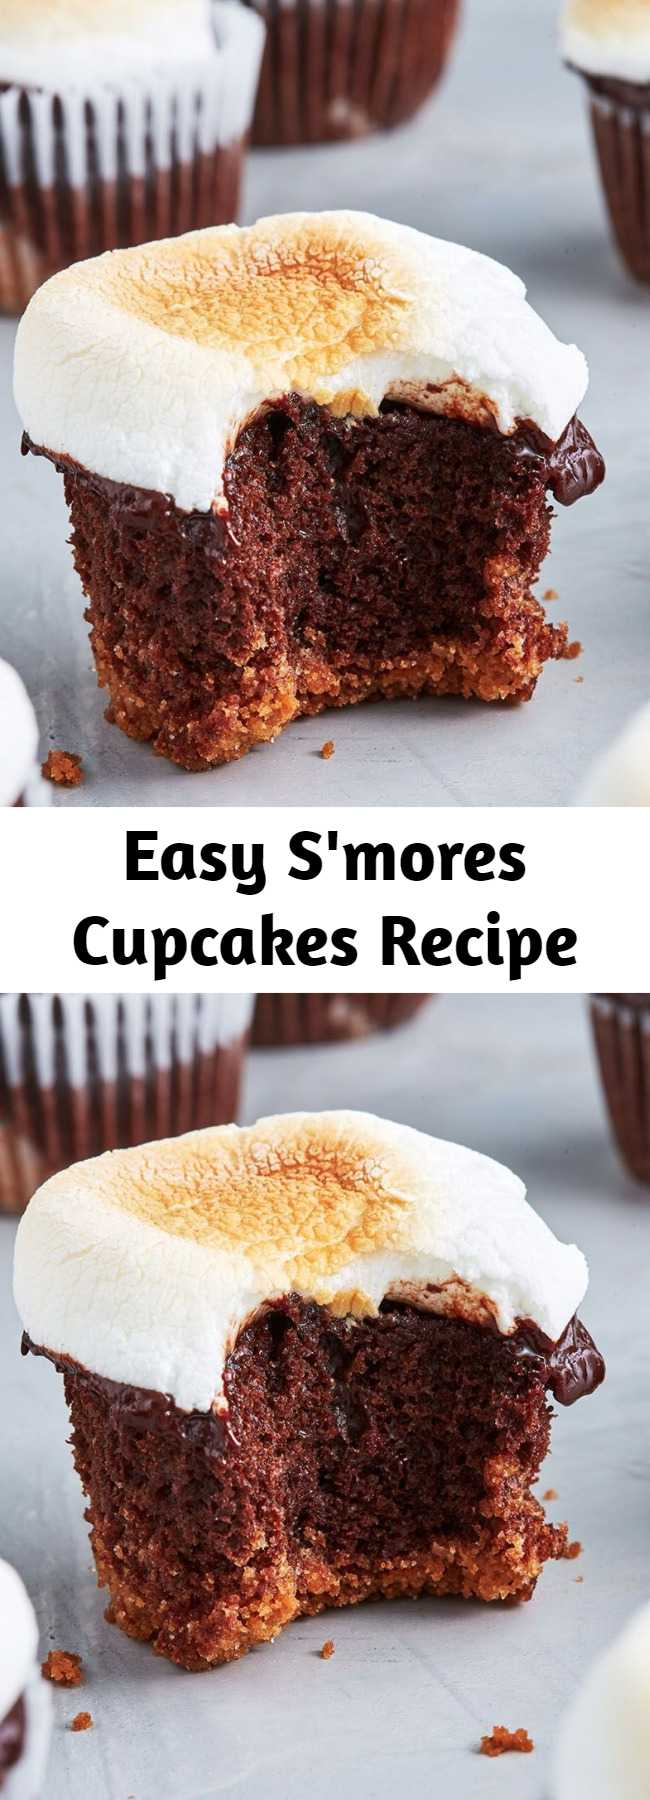 Easy S'mores Cupcakes Recipe - This S'mores Cupcakes recipe will leave you wanting s'more and s'more. S'mores are the best. There's no denying it. And now you can have everything you love about s'mores - buttery graham crackers, melty chocolate, and toasted marshmallow - in a cupcake! It's the best of both worlds!!